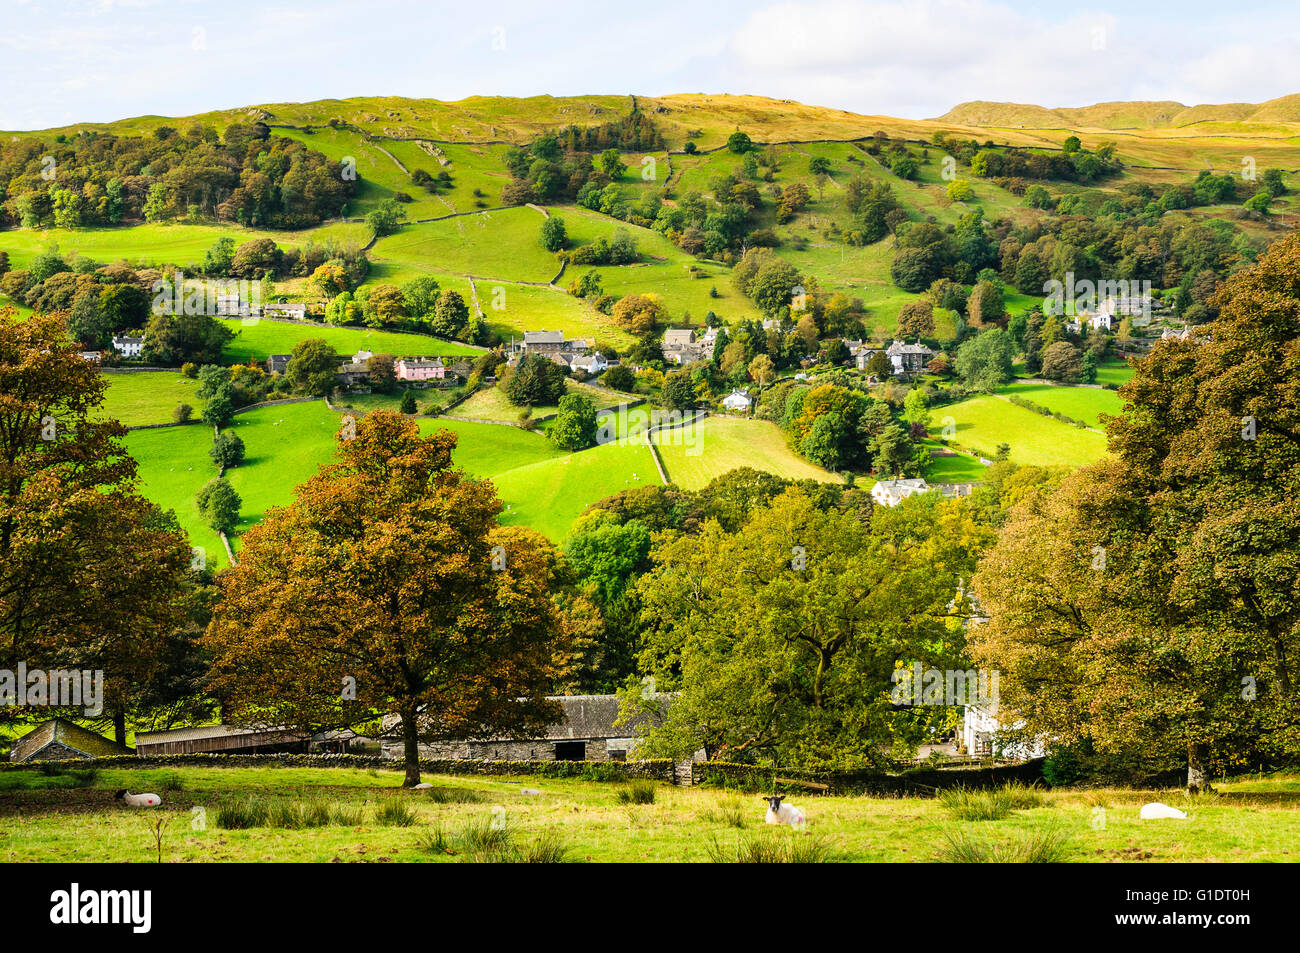 The scattered village of Troutbeck in the Lake District - Stock Image